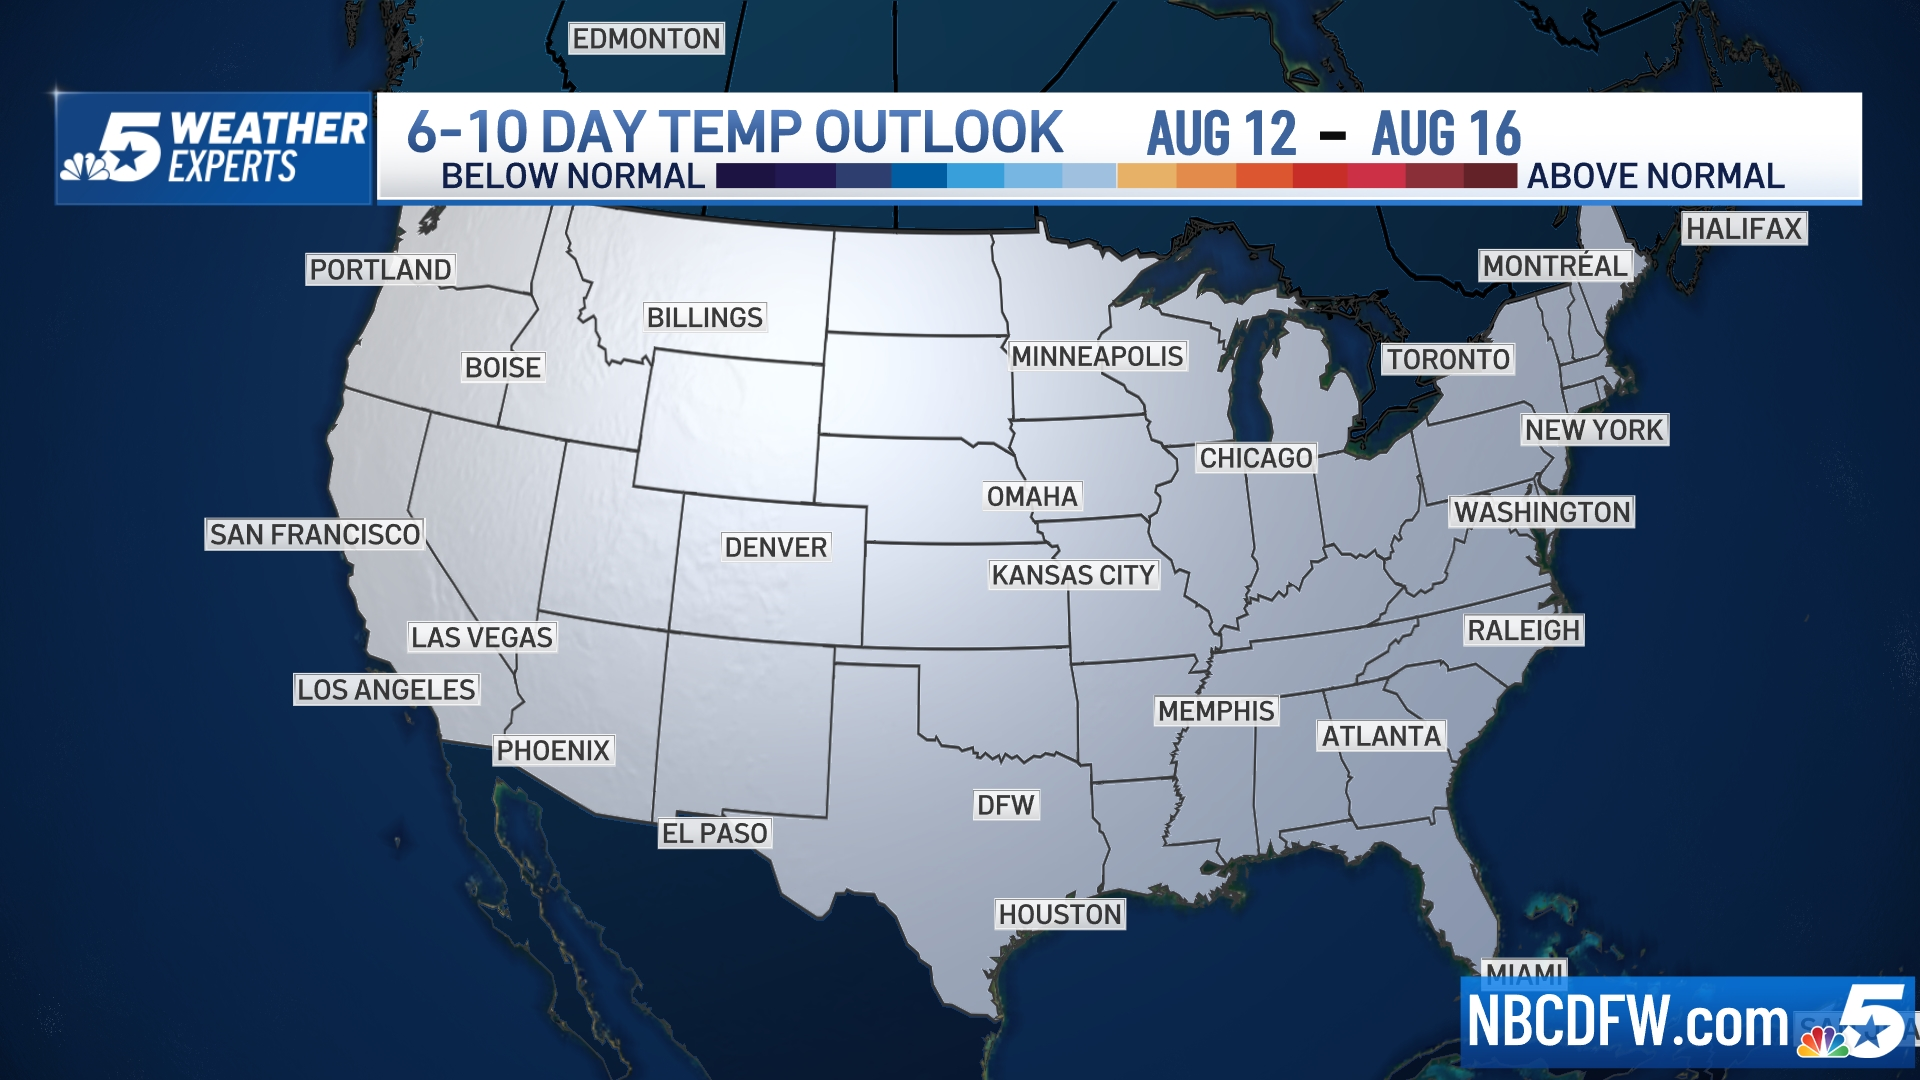 6 to 10 Day Outlook - Temperature